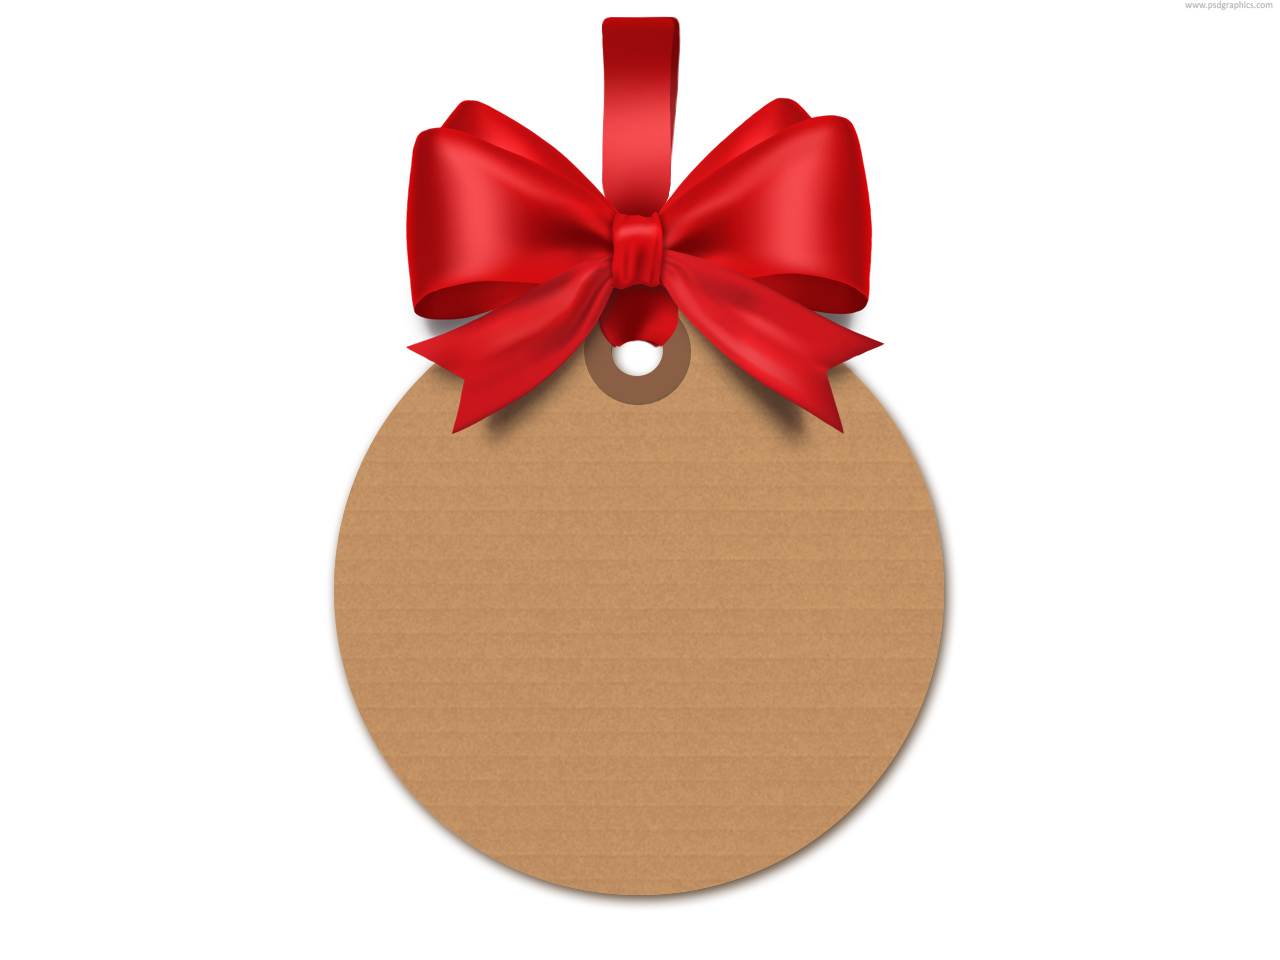 Full size JPG preview: Gift tag template - Gift Tag PNG